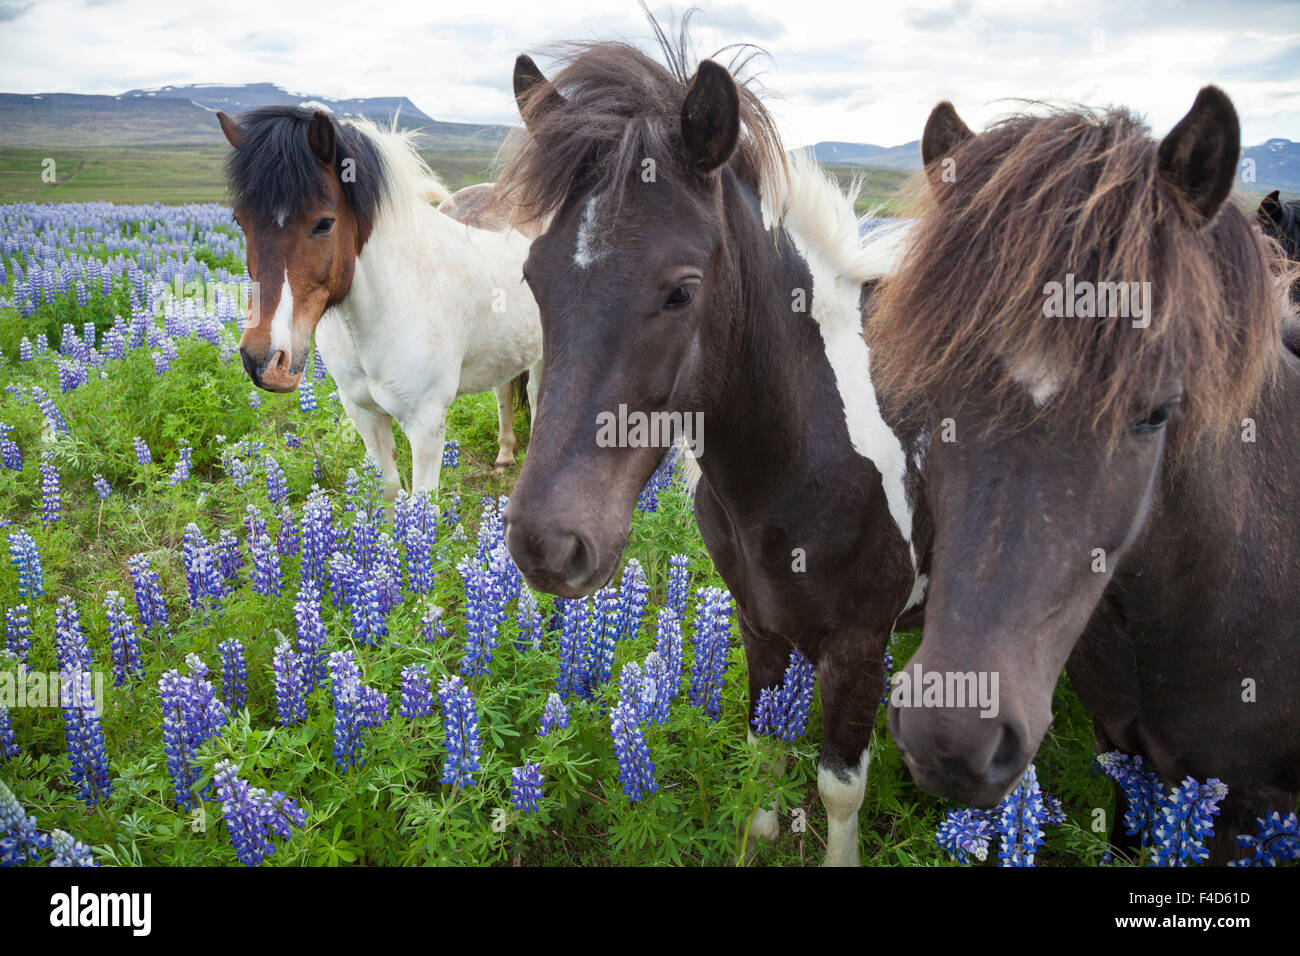 Icelandic horses in a meadow of Blue Alaskan lupins, Varmahlid, Skagafjordur, Nordhurland Vestra, Iceland. Stock Photo